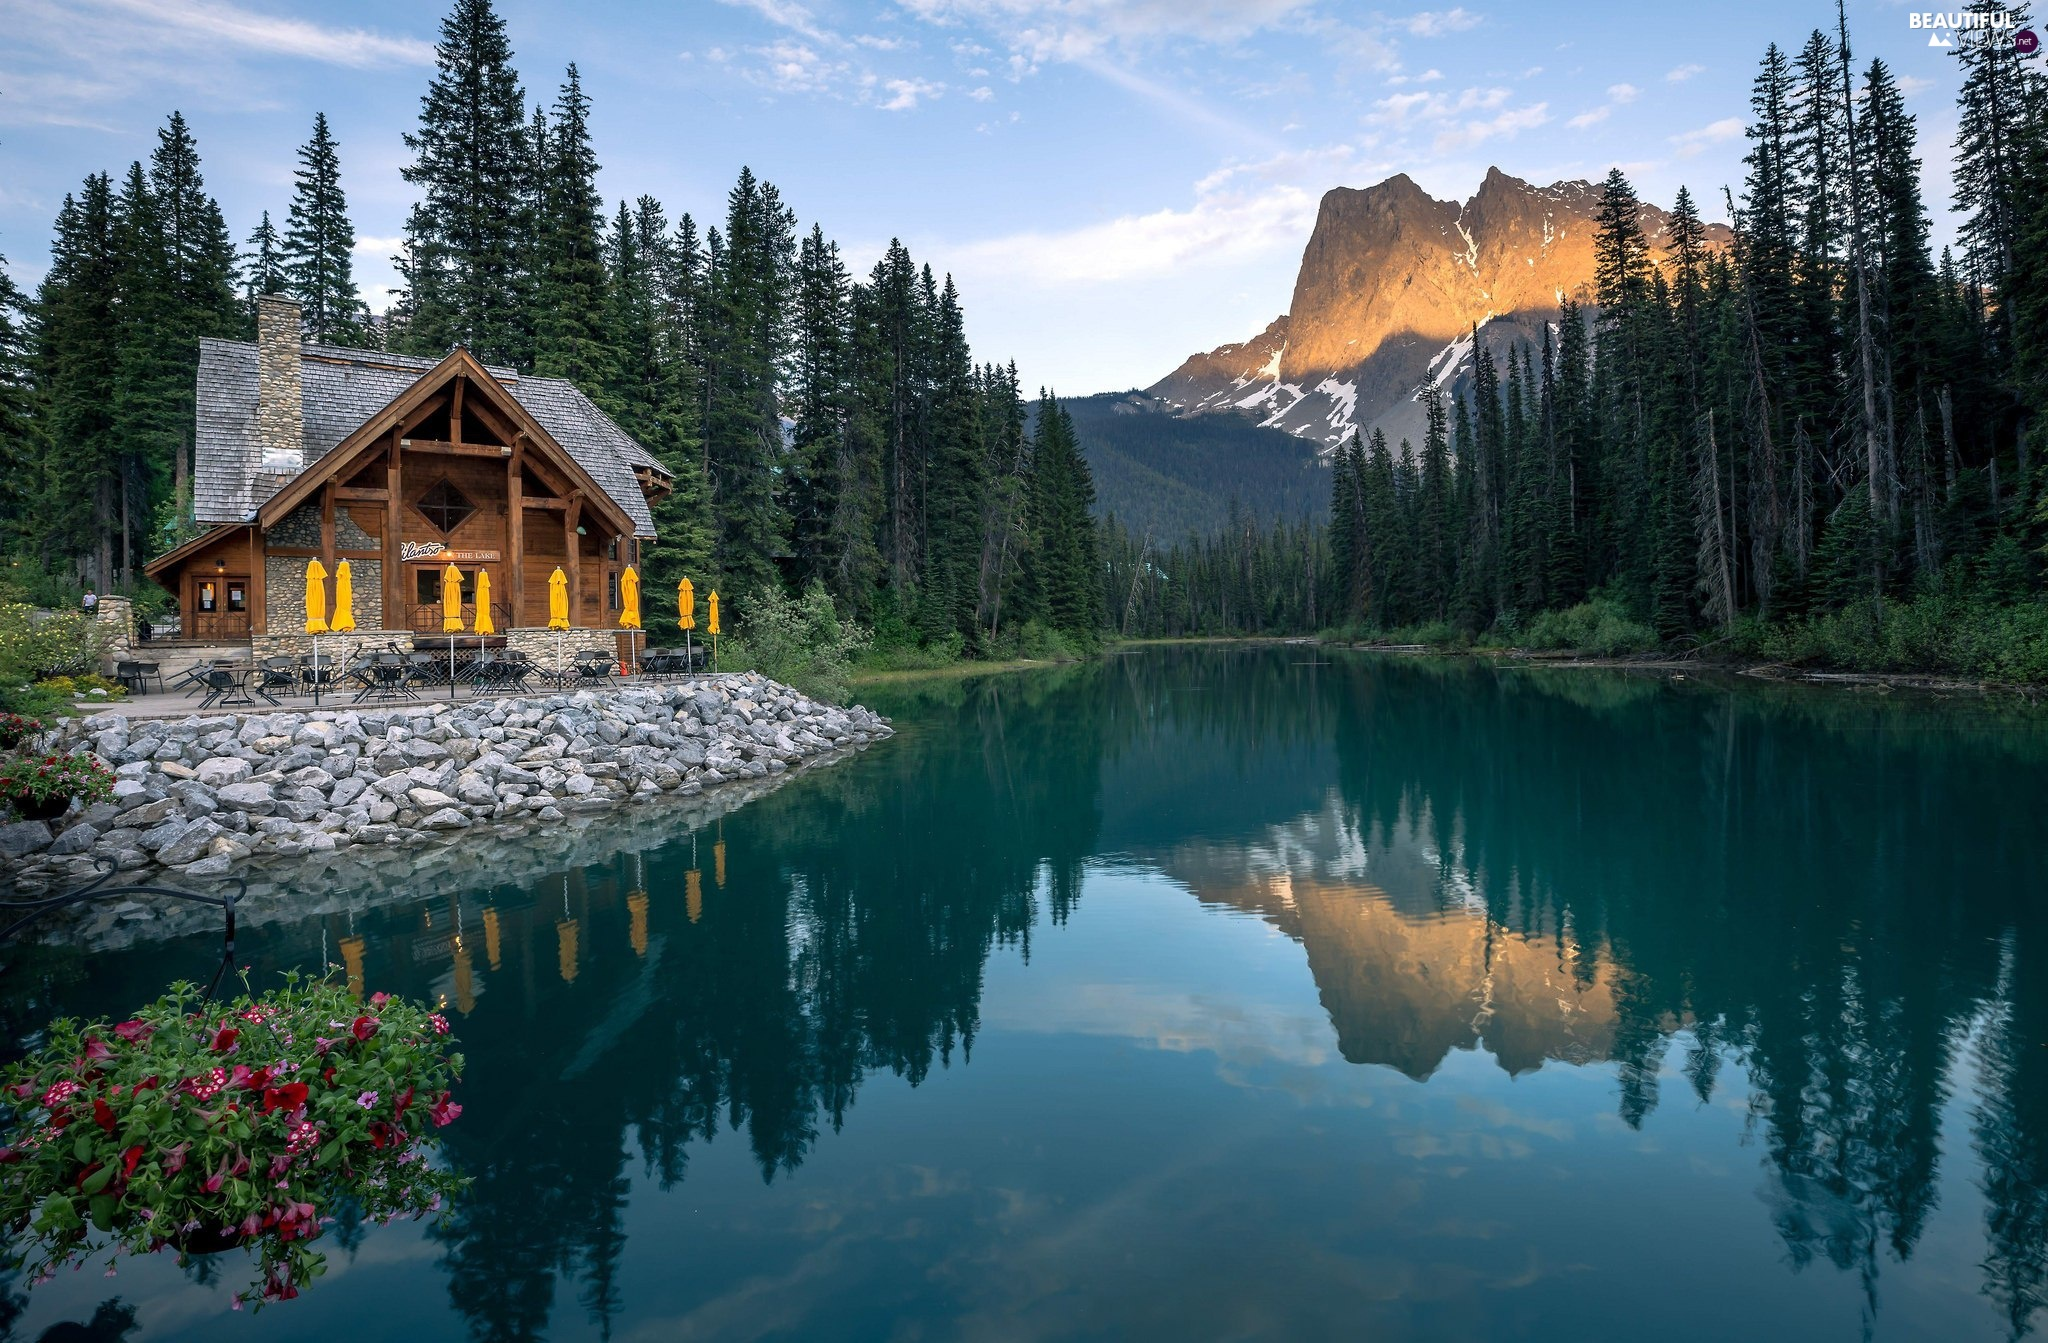 Emerald Lake, trees, Canada, viewes, Province of British Columbia, Mountains, Yoho National Park, house